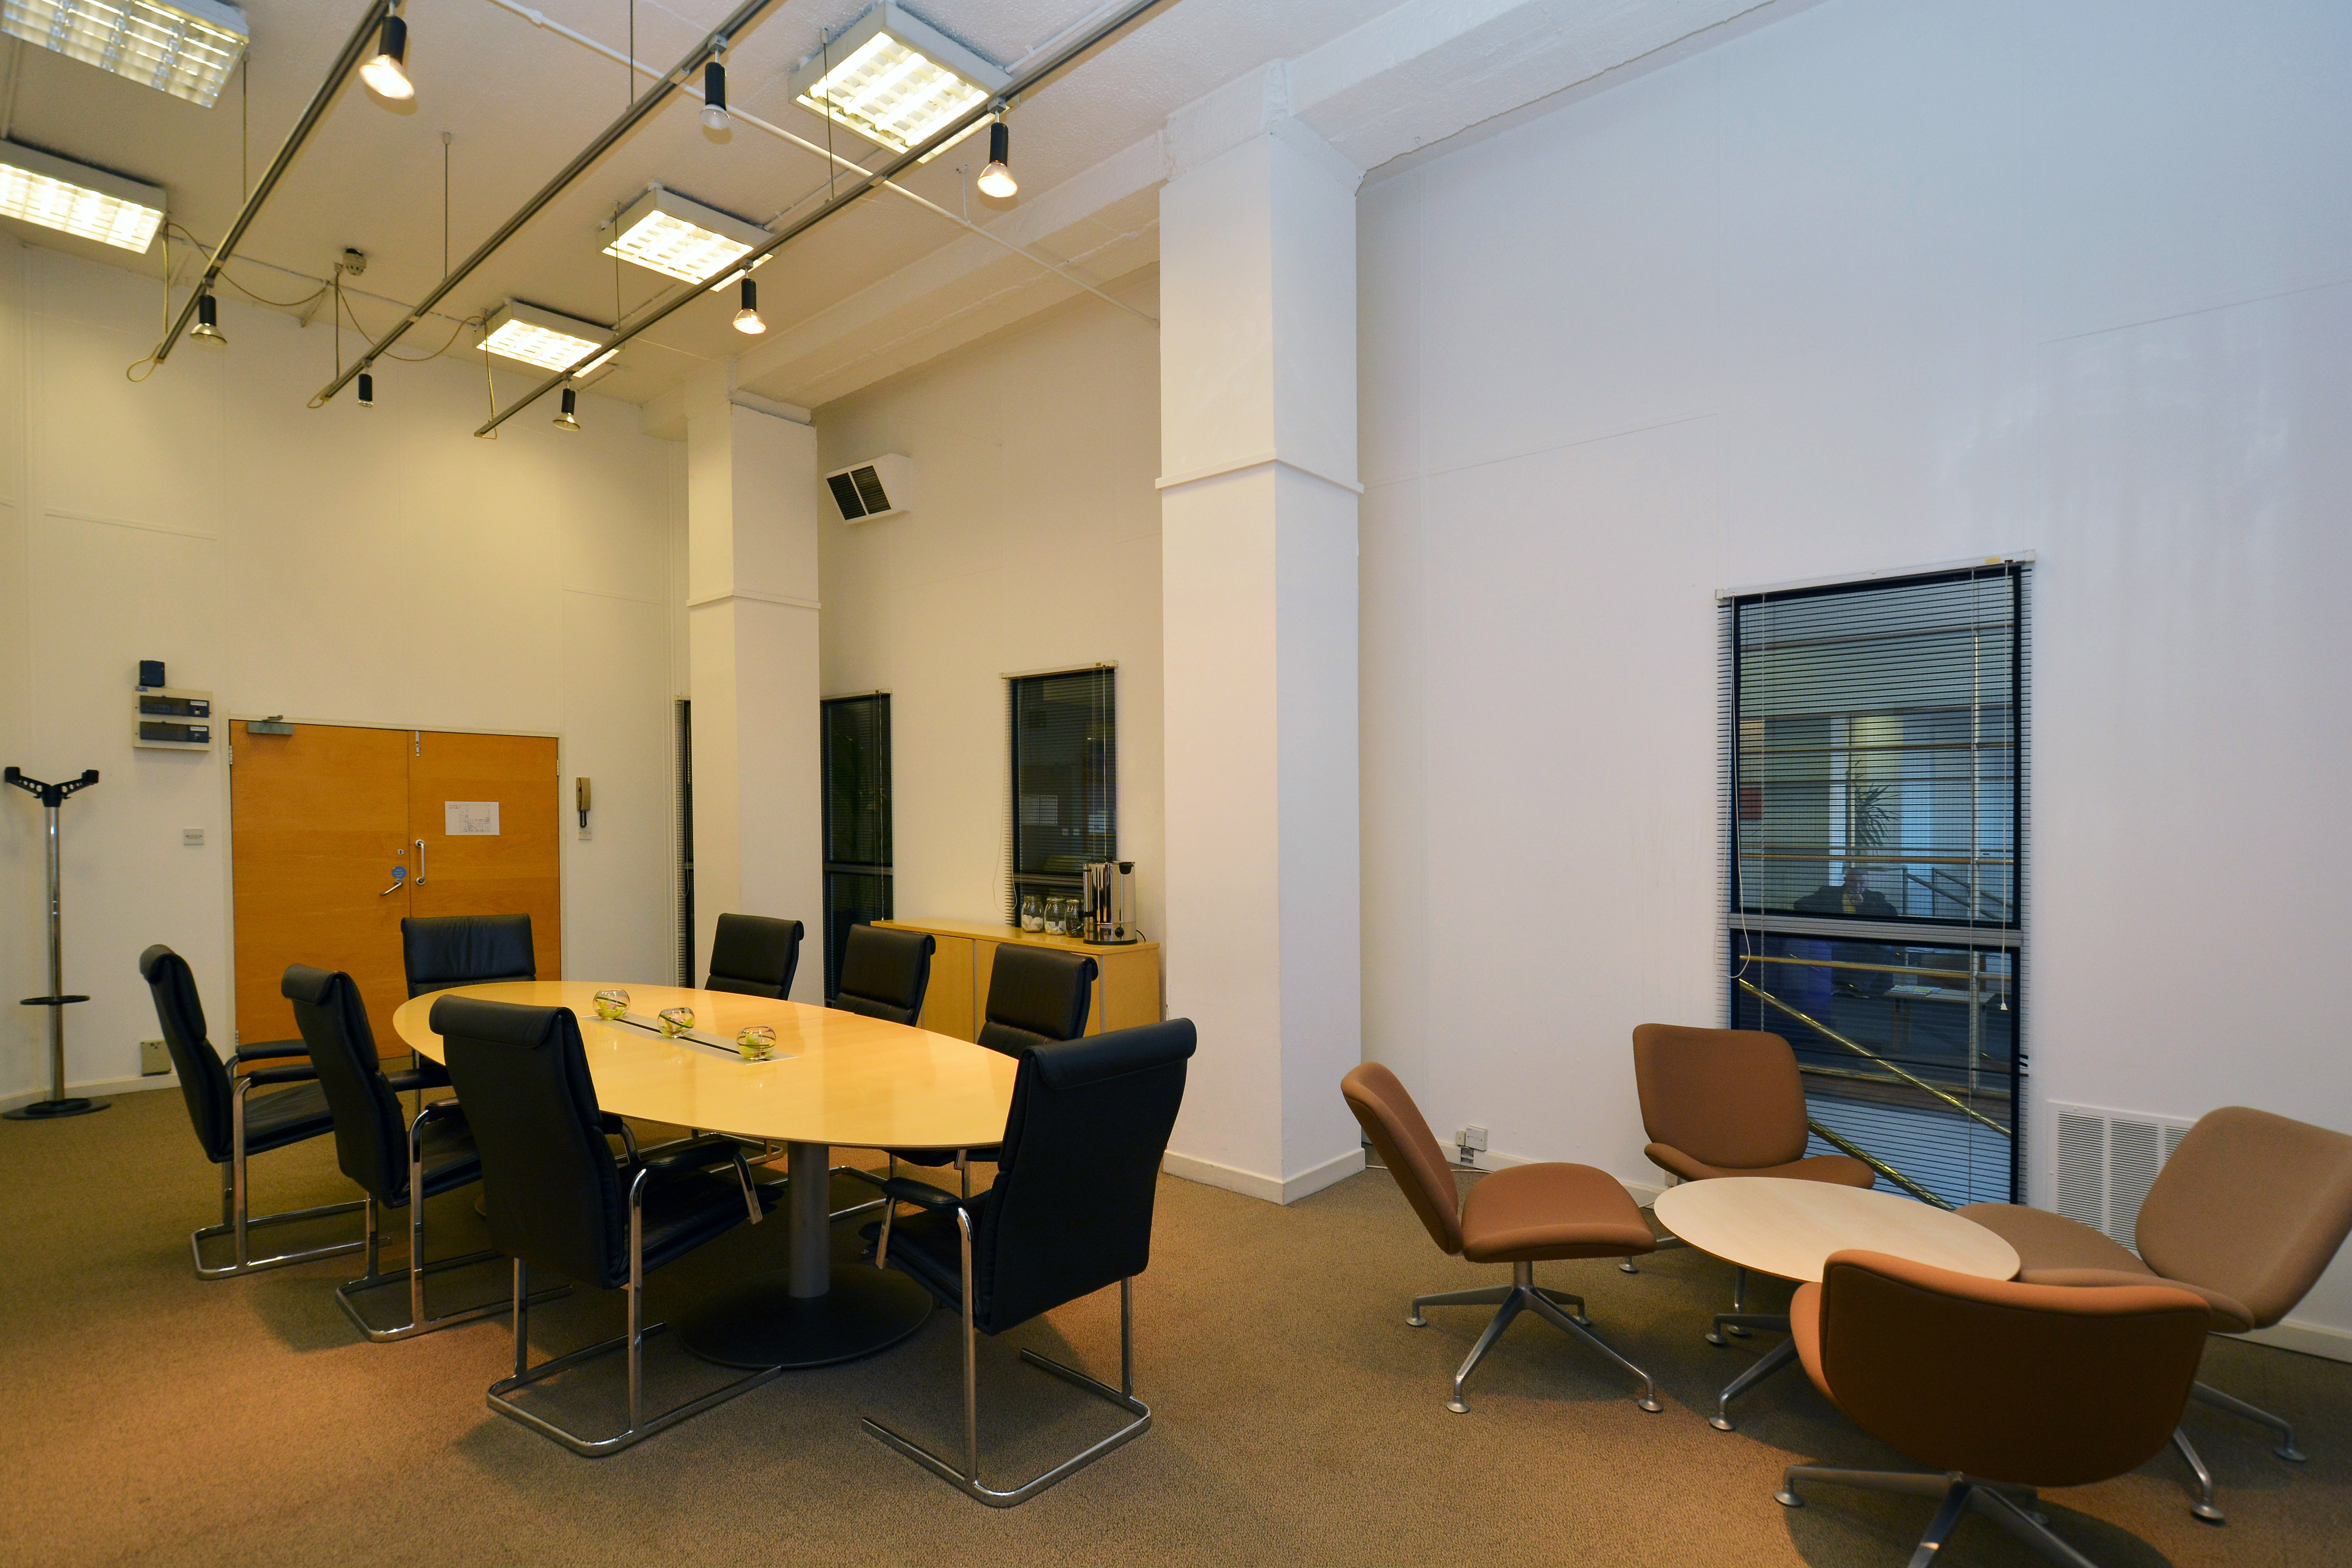 Meeting Room, Bizspace, The Pentagon Centre, Glasgow G3